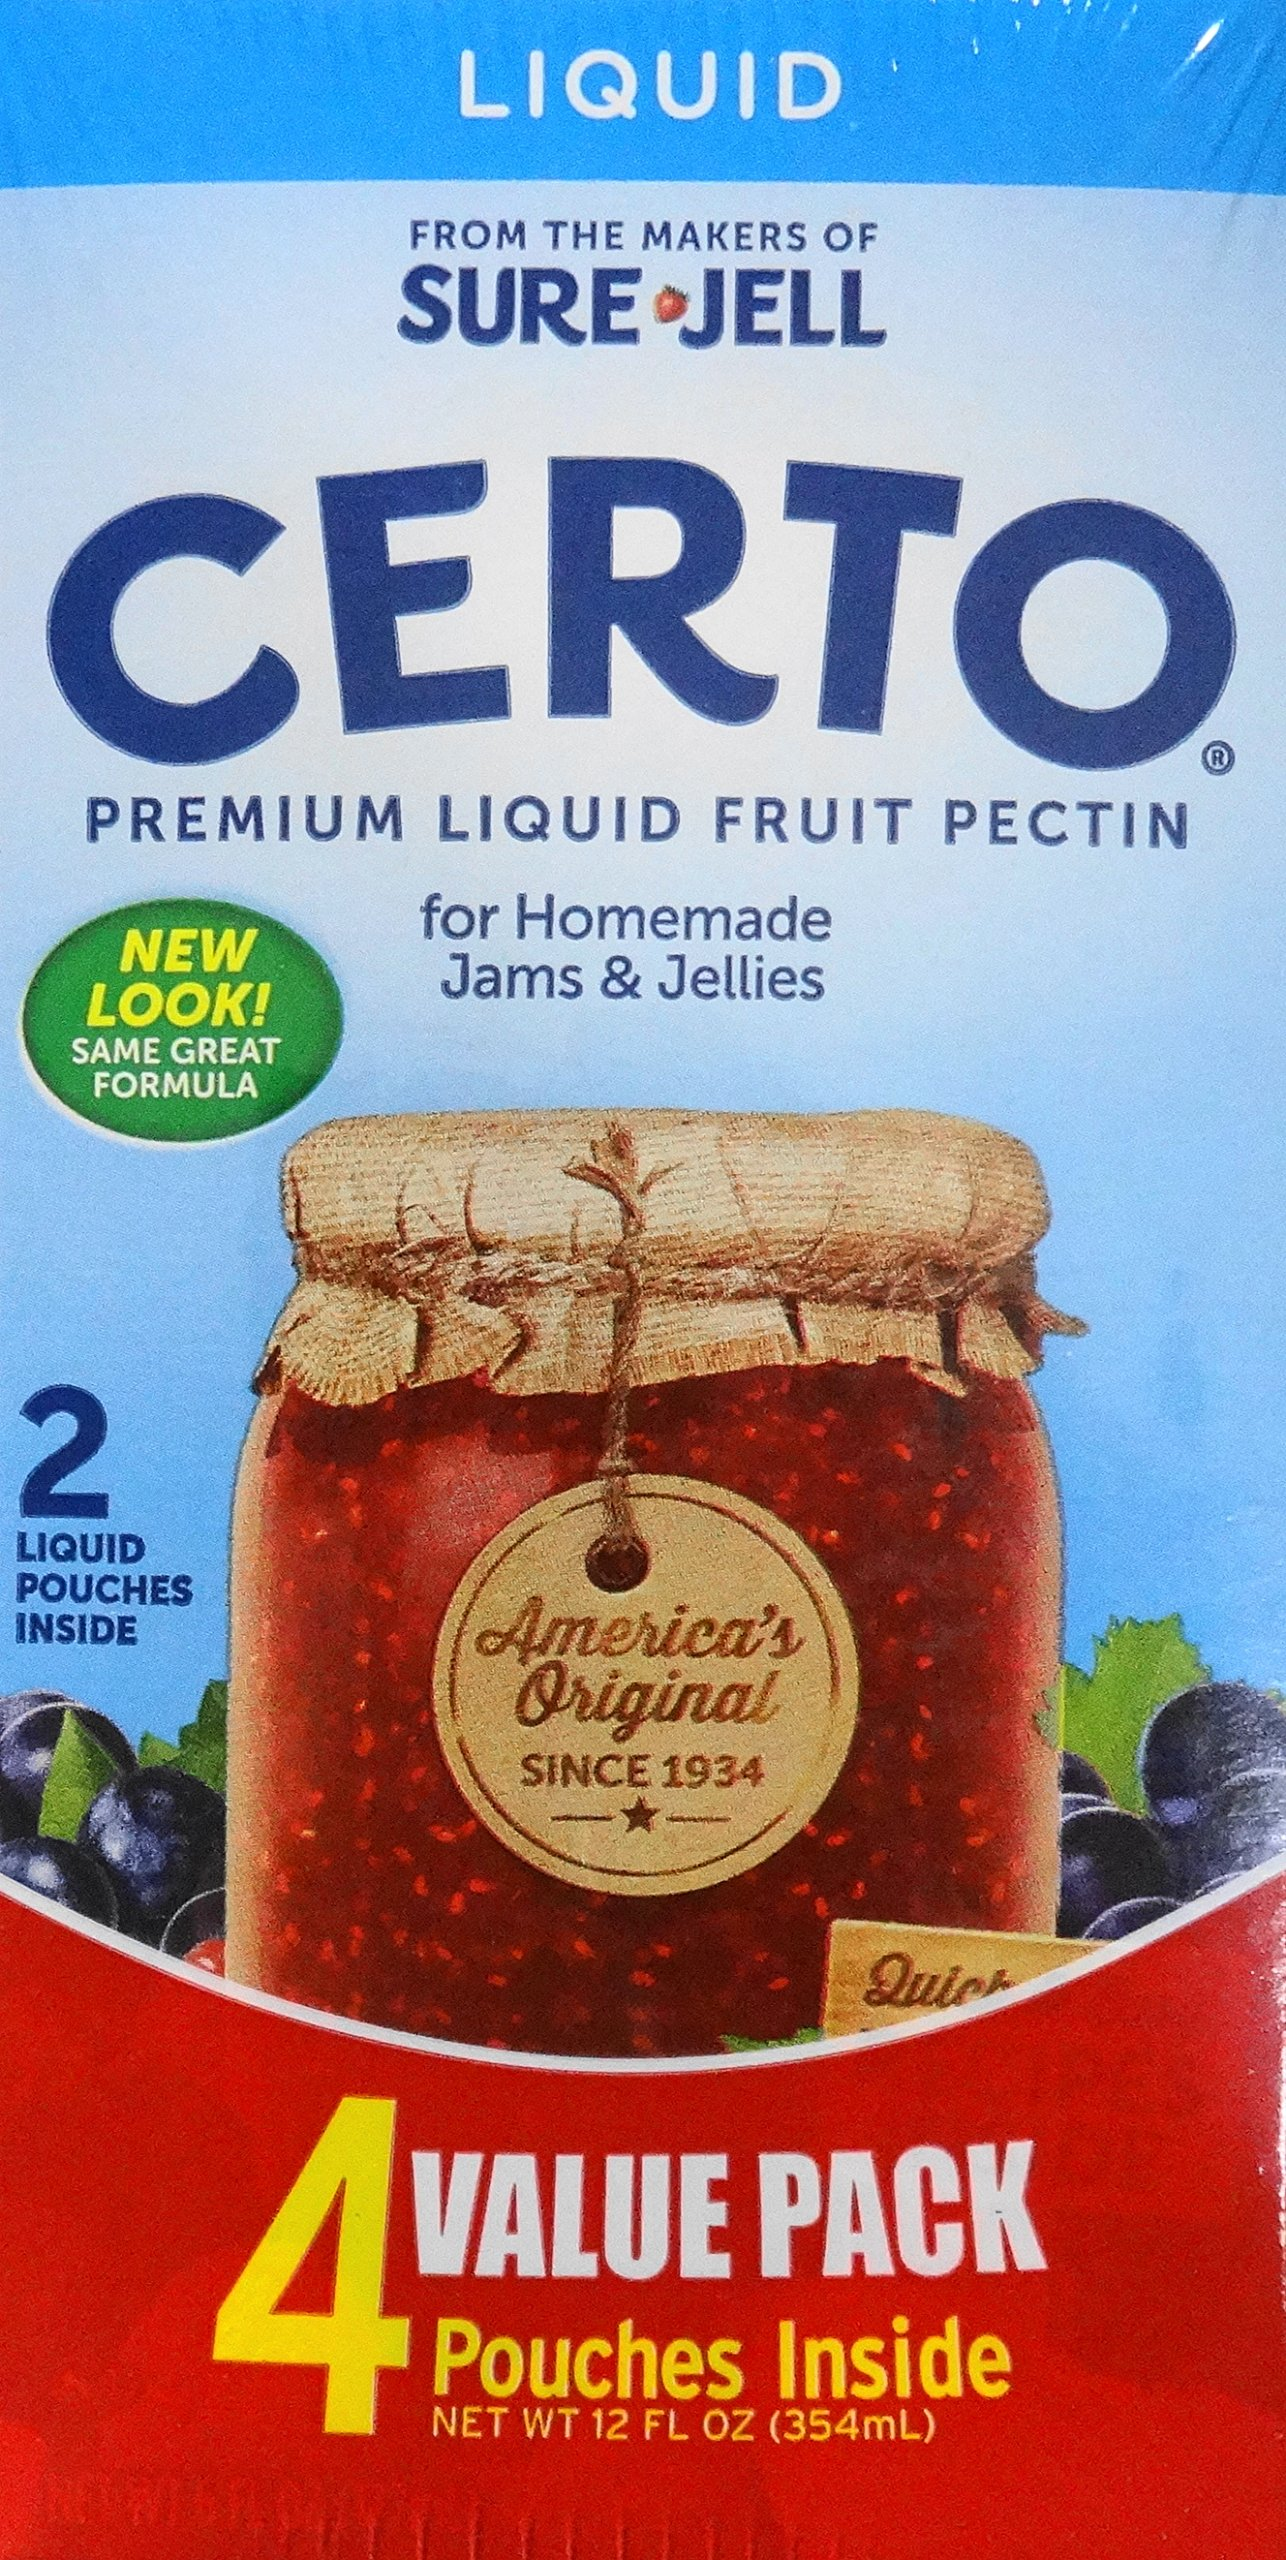 Sure-Jell Certo Premium Liquid Fruit Pectin Value Pack, 2 Boxes, 4 Pouches